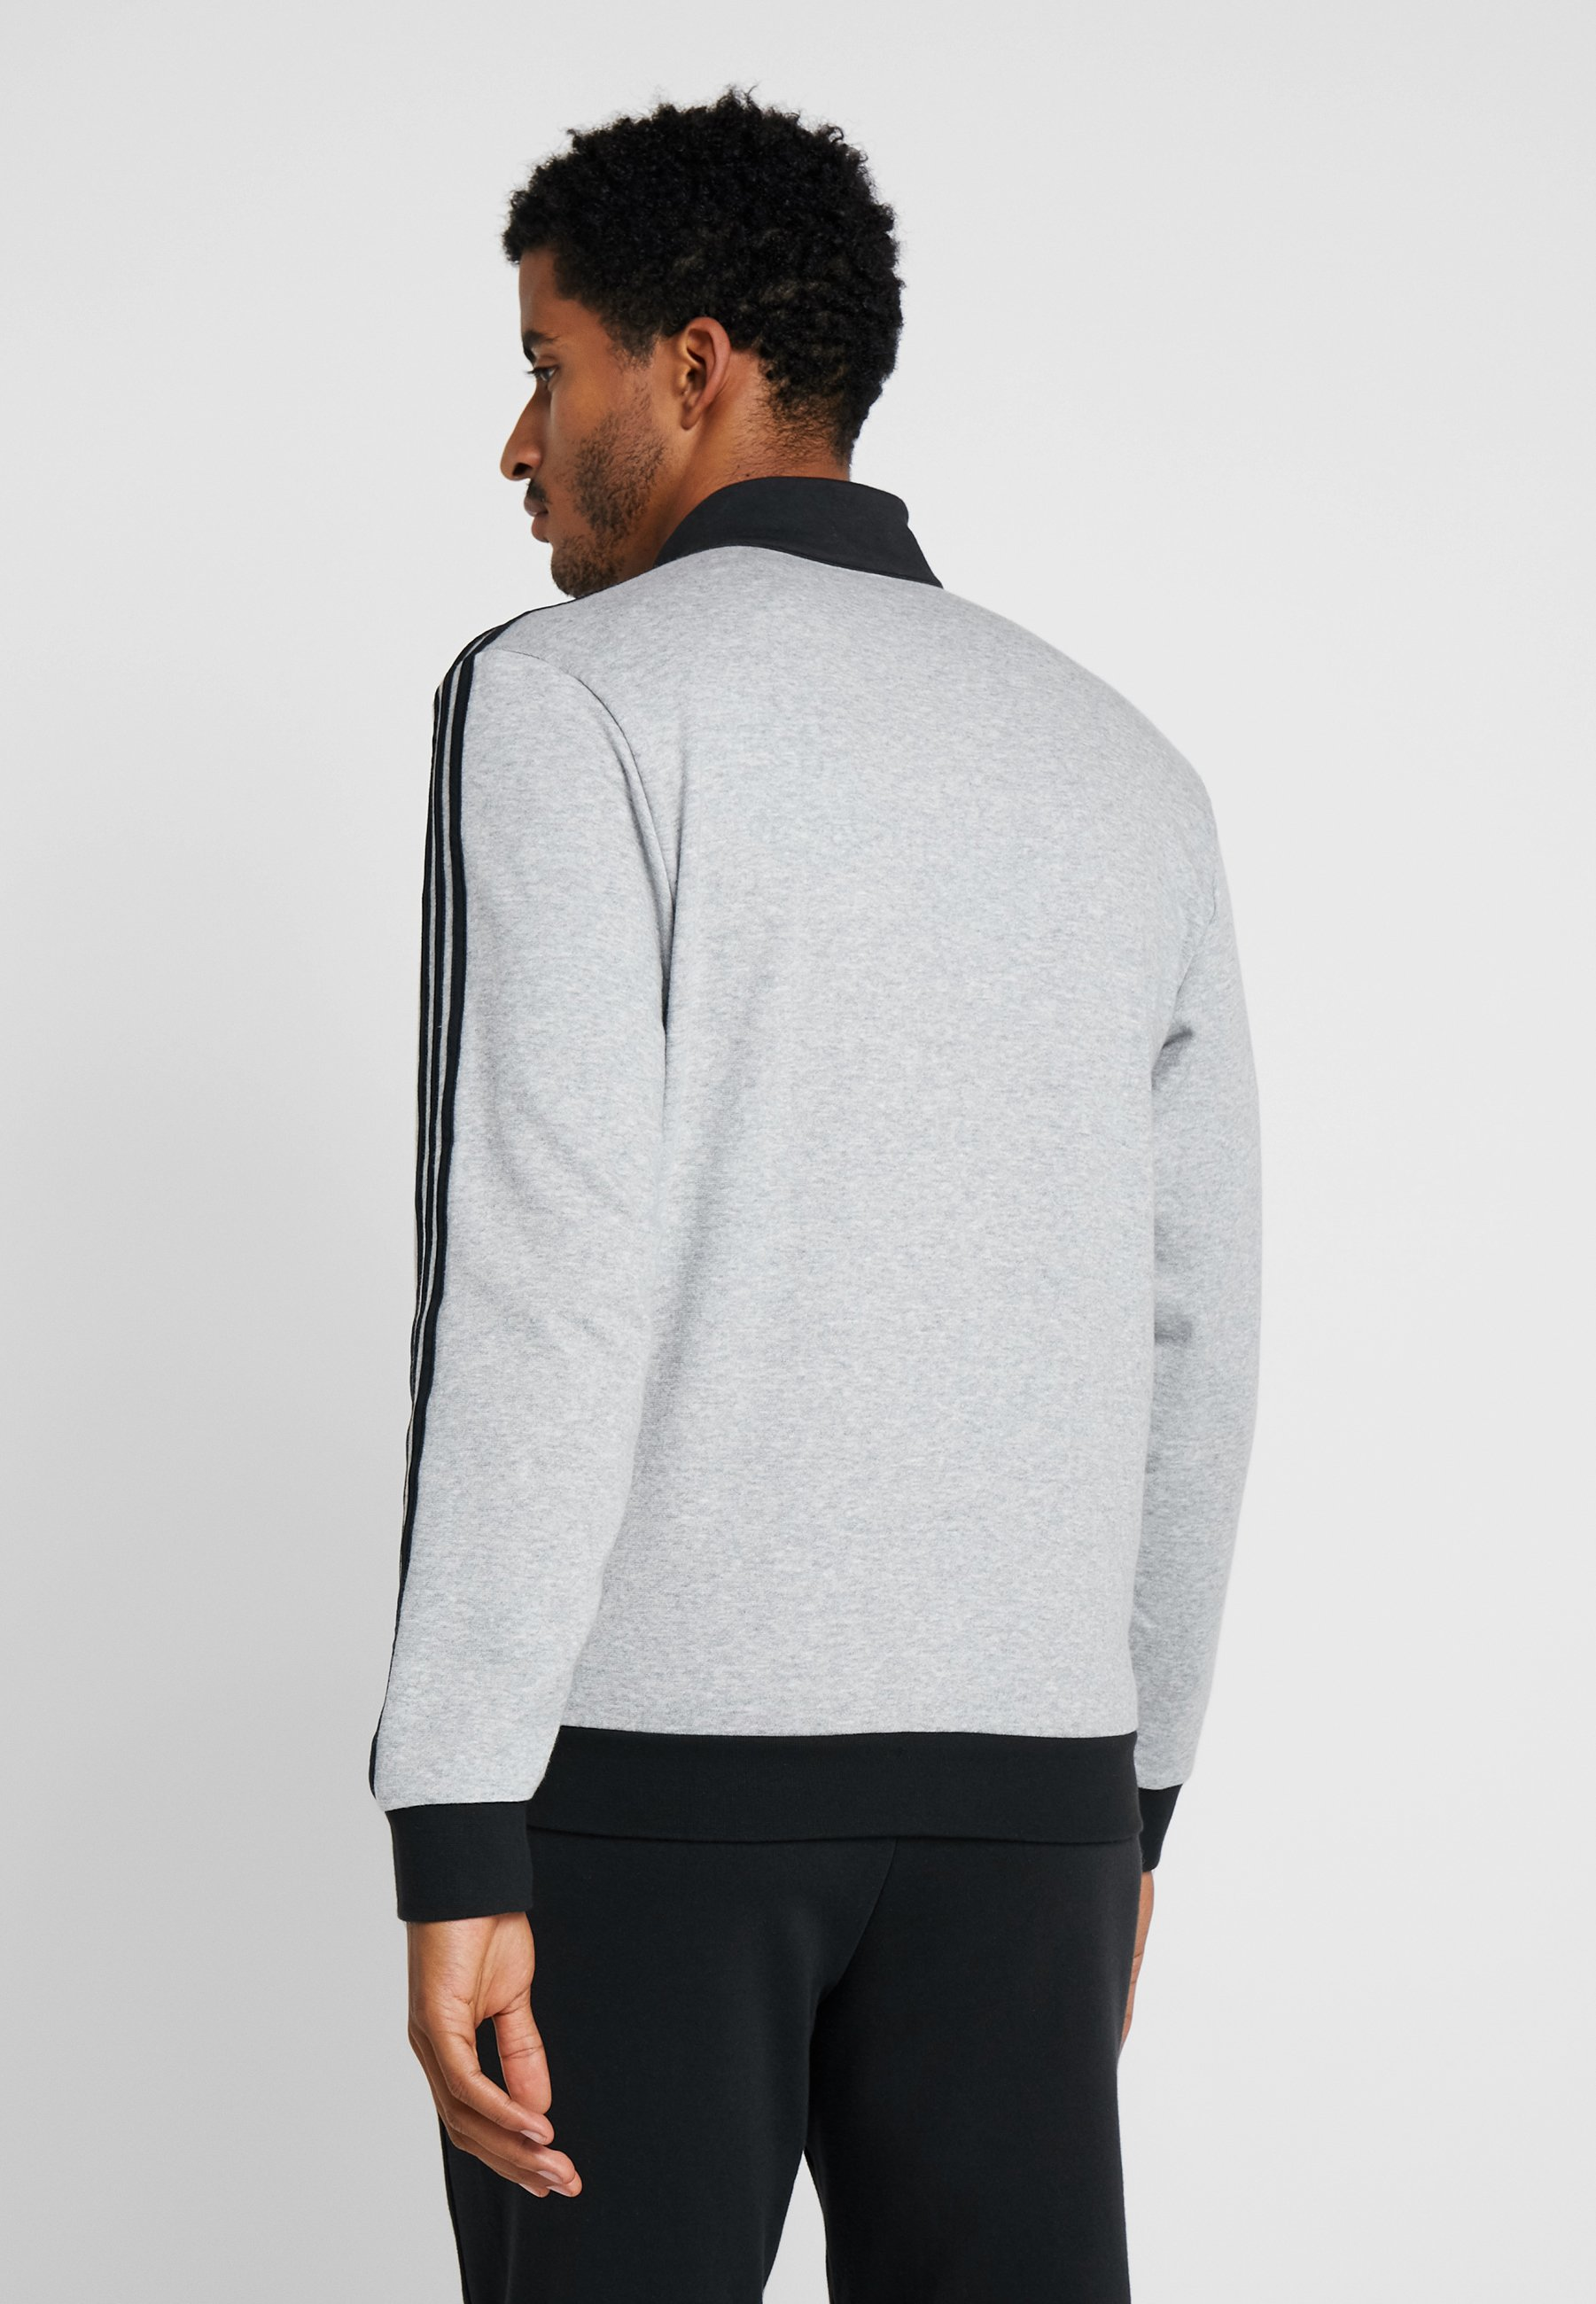 Grey Adidas Performance RelaxSurvêtement Medium black Heather lF3T1JcK